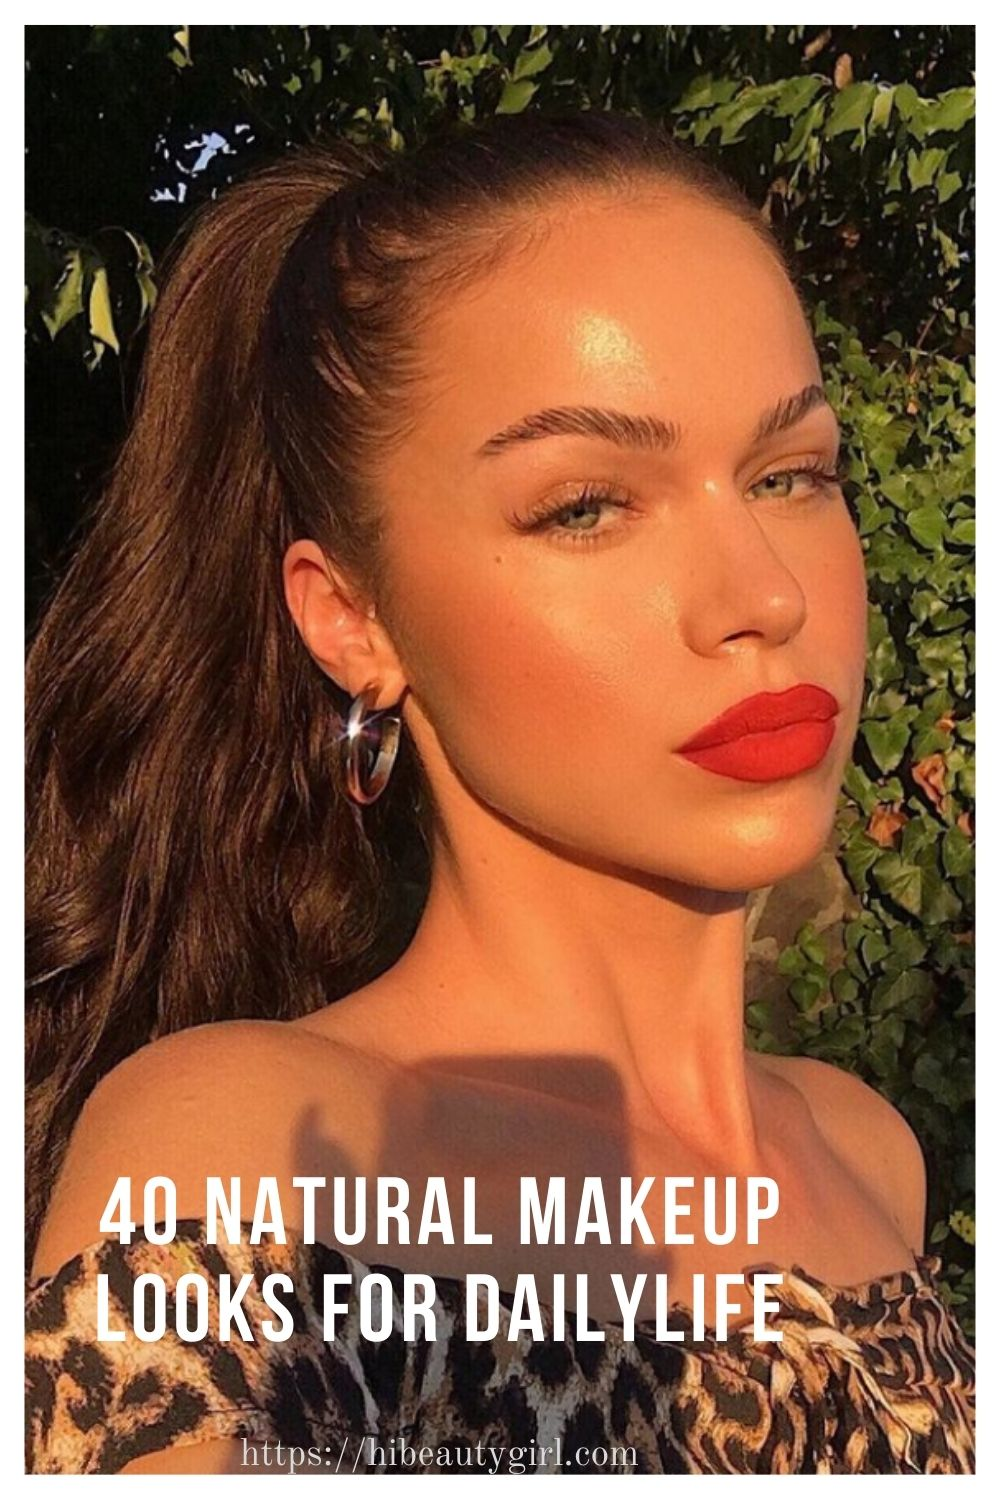 How To Achieve Natural Makeup Looks By Yourself!